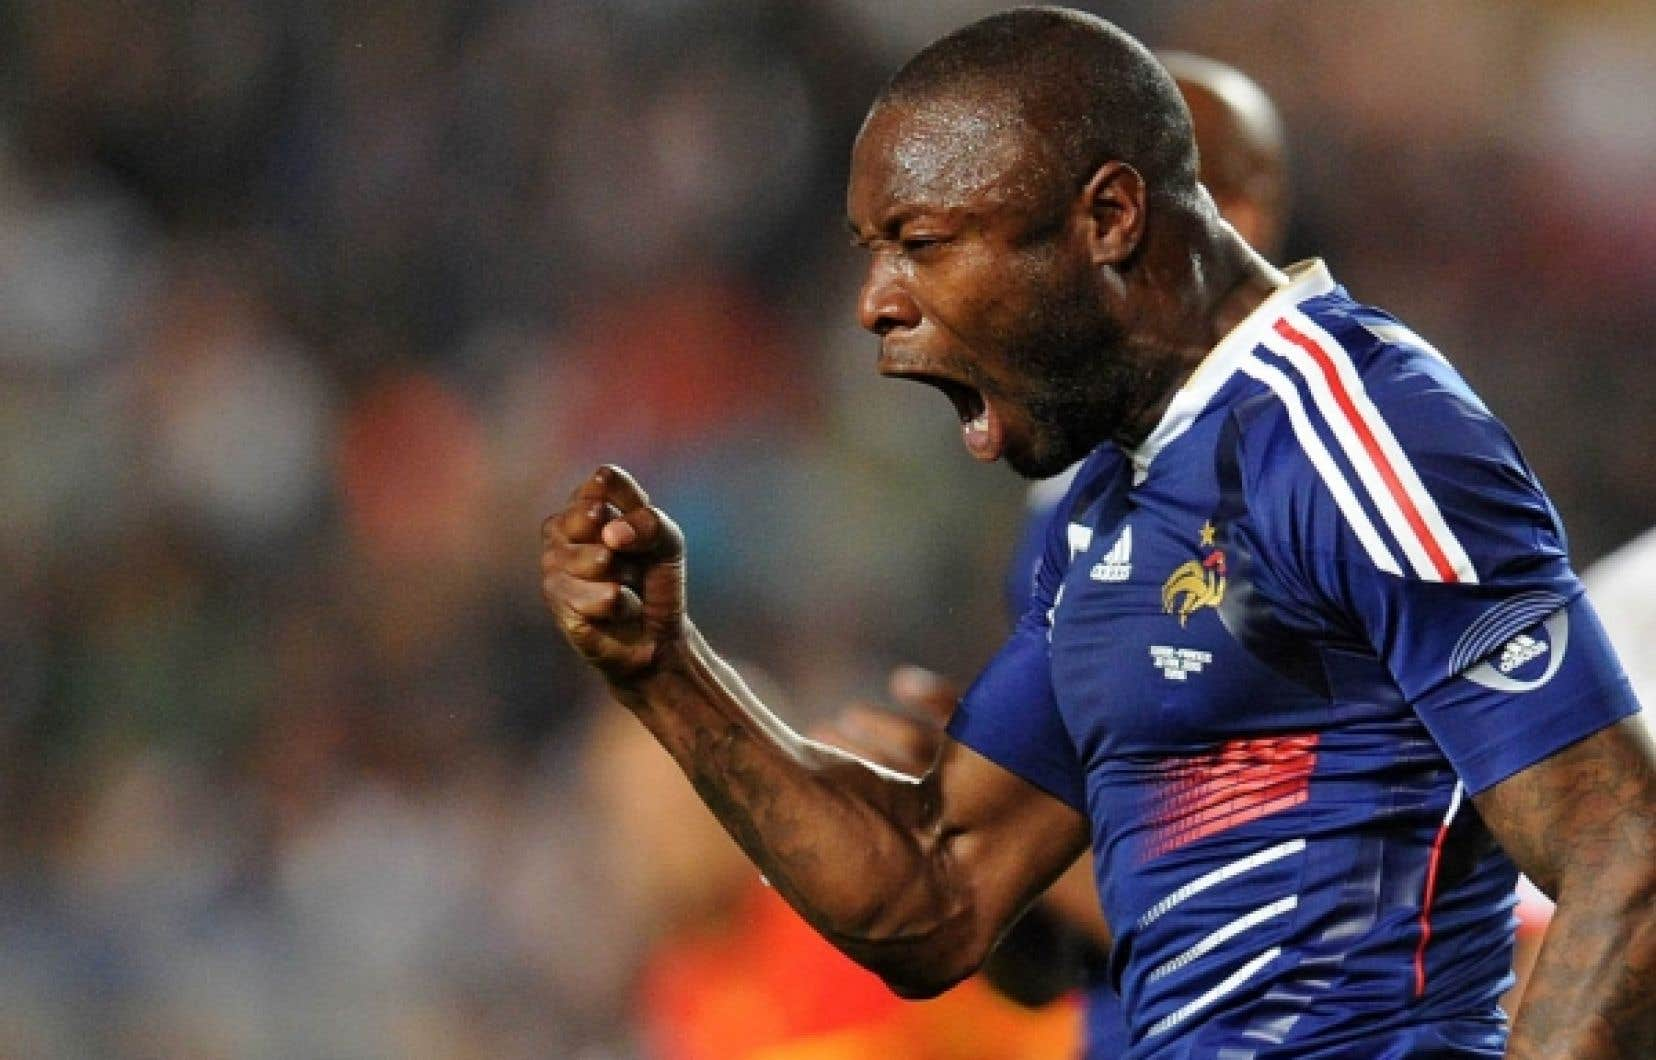 Le défenseur William Gallas, de l'équipe de France